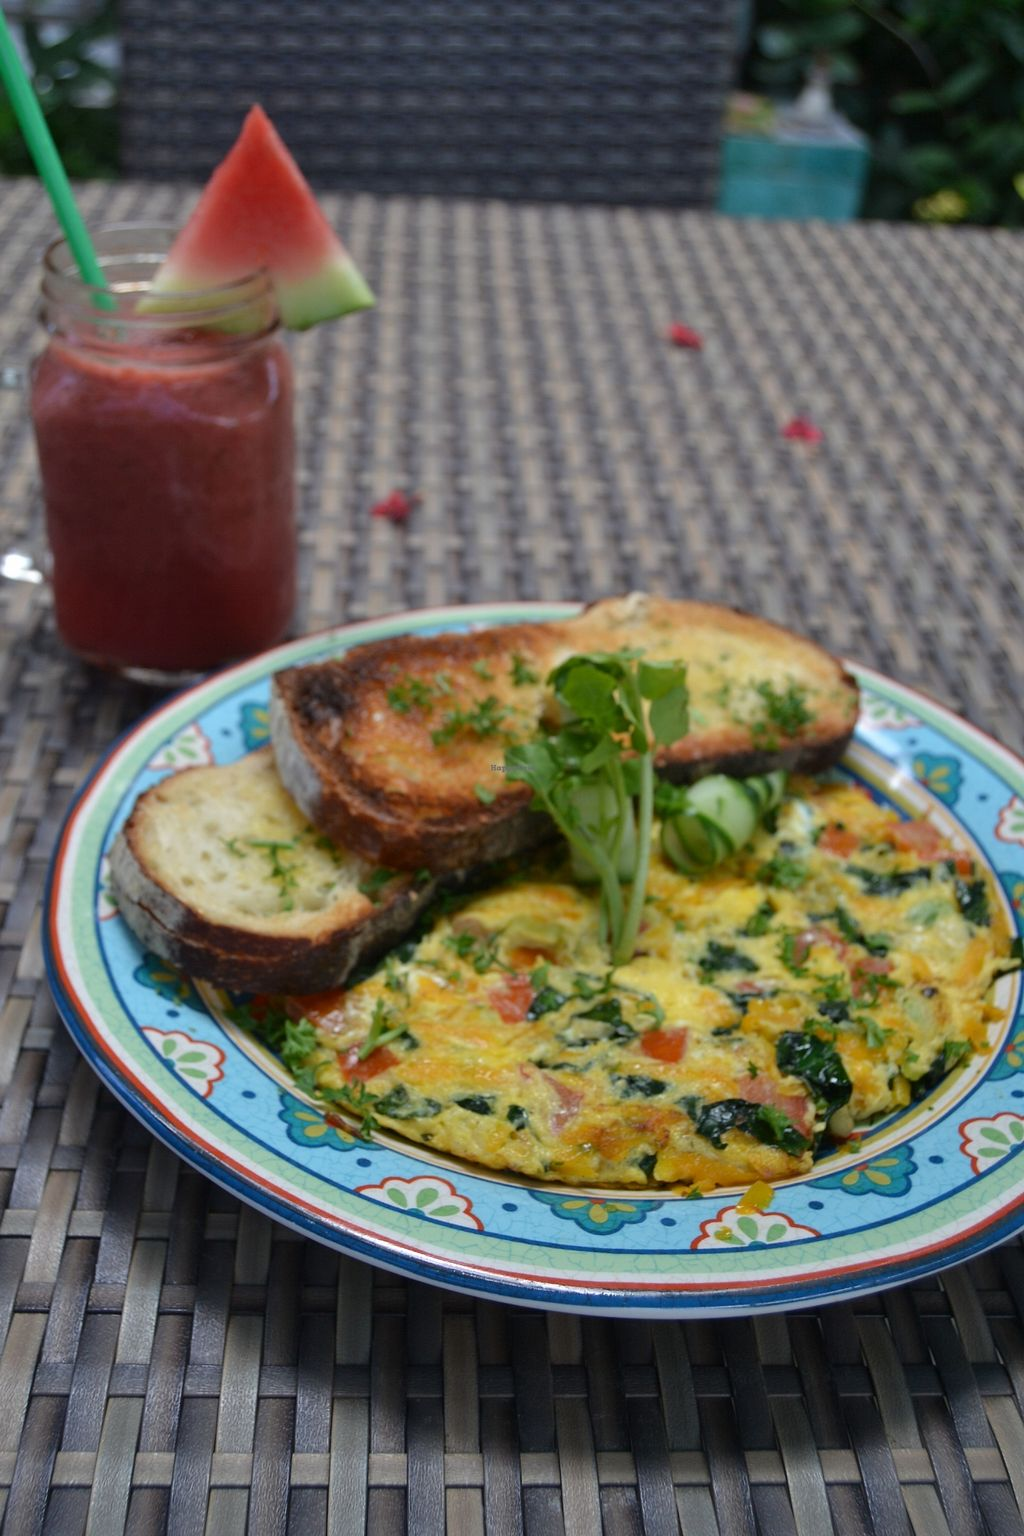 """Photo of The Cashew Tree  by <a href=""""/members/profile/germina_paola"""">germina_paola</a> <br/>Veggie Omelette <br/> December 23, 2017  - <a href='/contact/abuse/image/75644/338252'>Report</a>"""